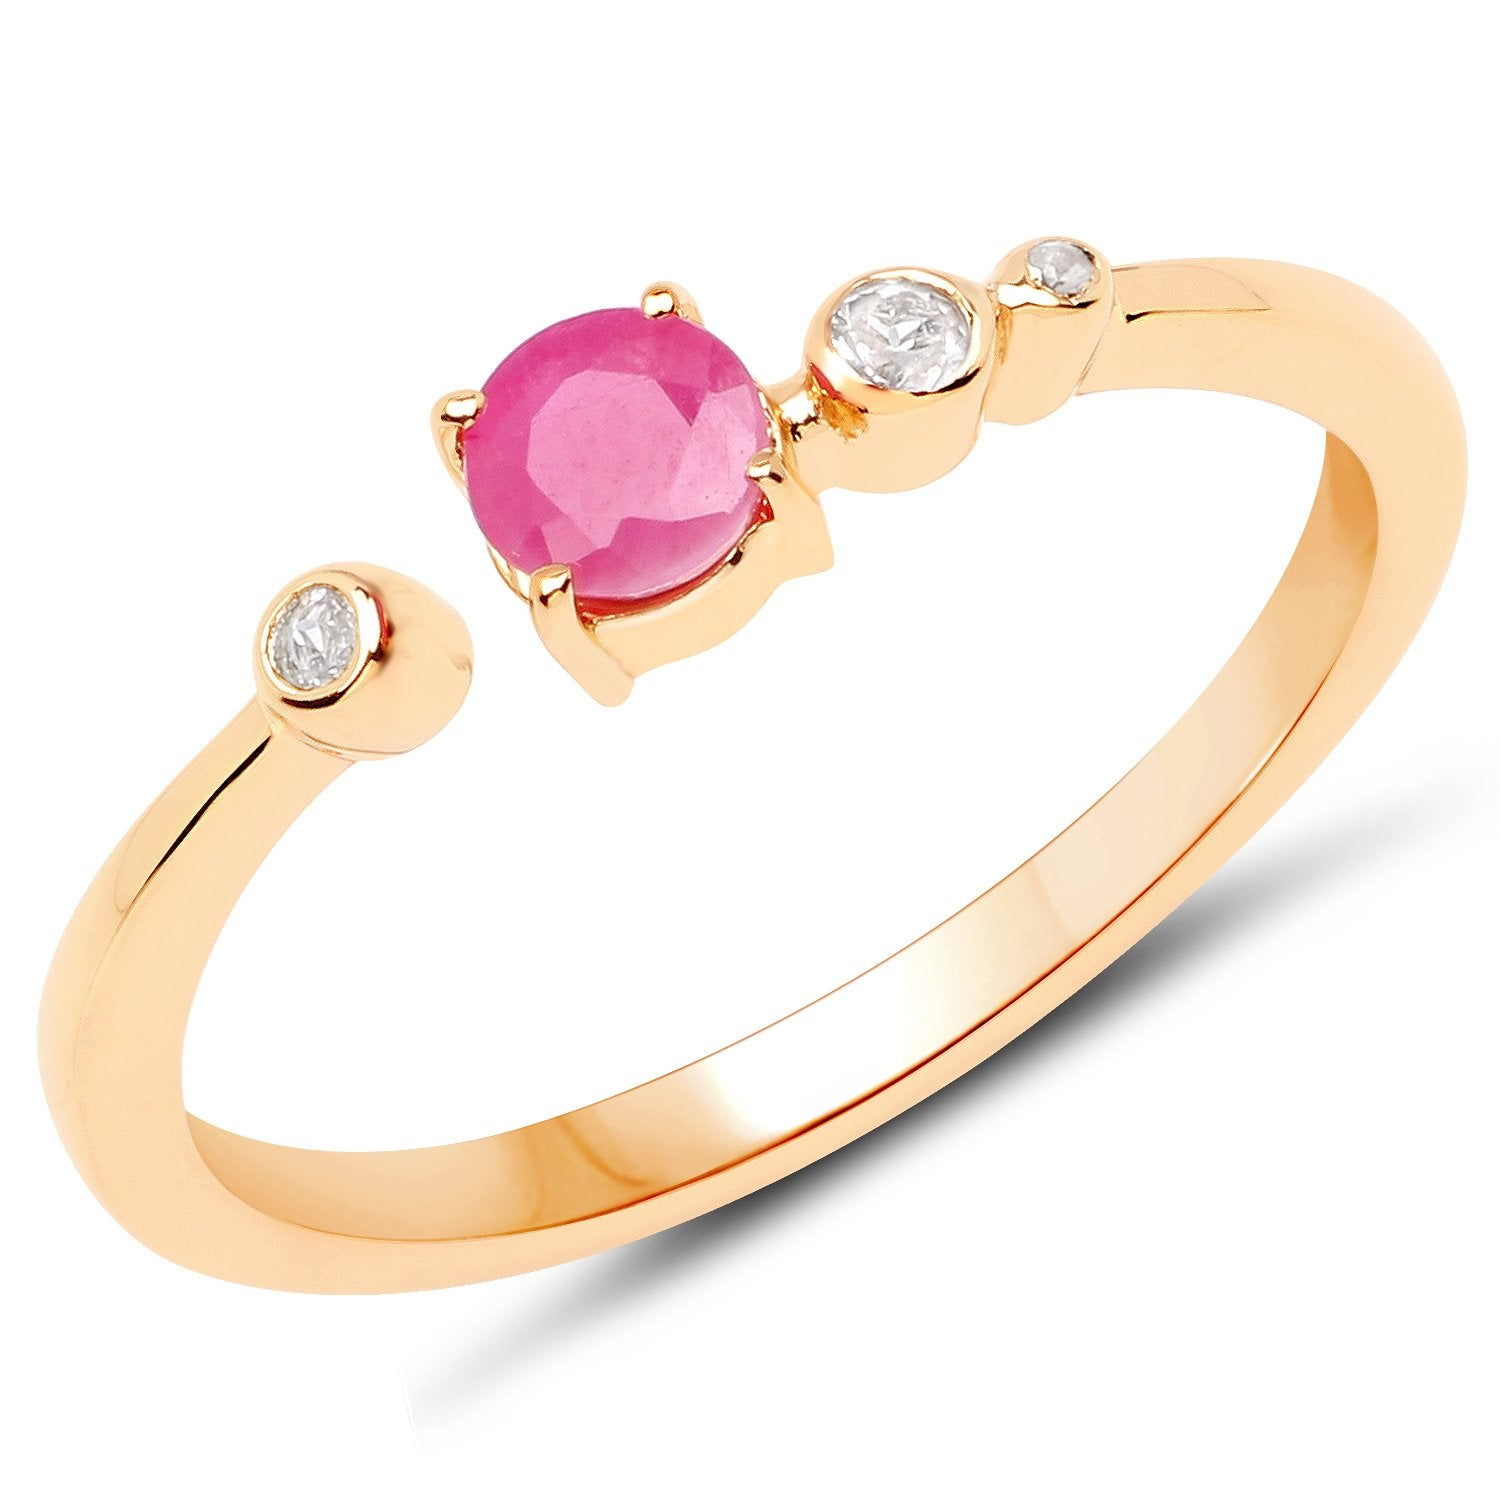 LoveHuang 0.33 Carats Genuine Ruby and White Topaz Ring Solid .925 Sterling Silver With 18KT Yellow Gold Plating